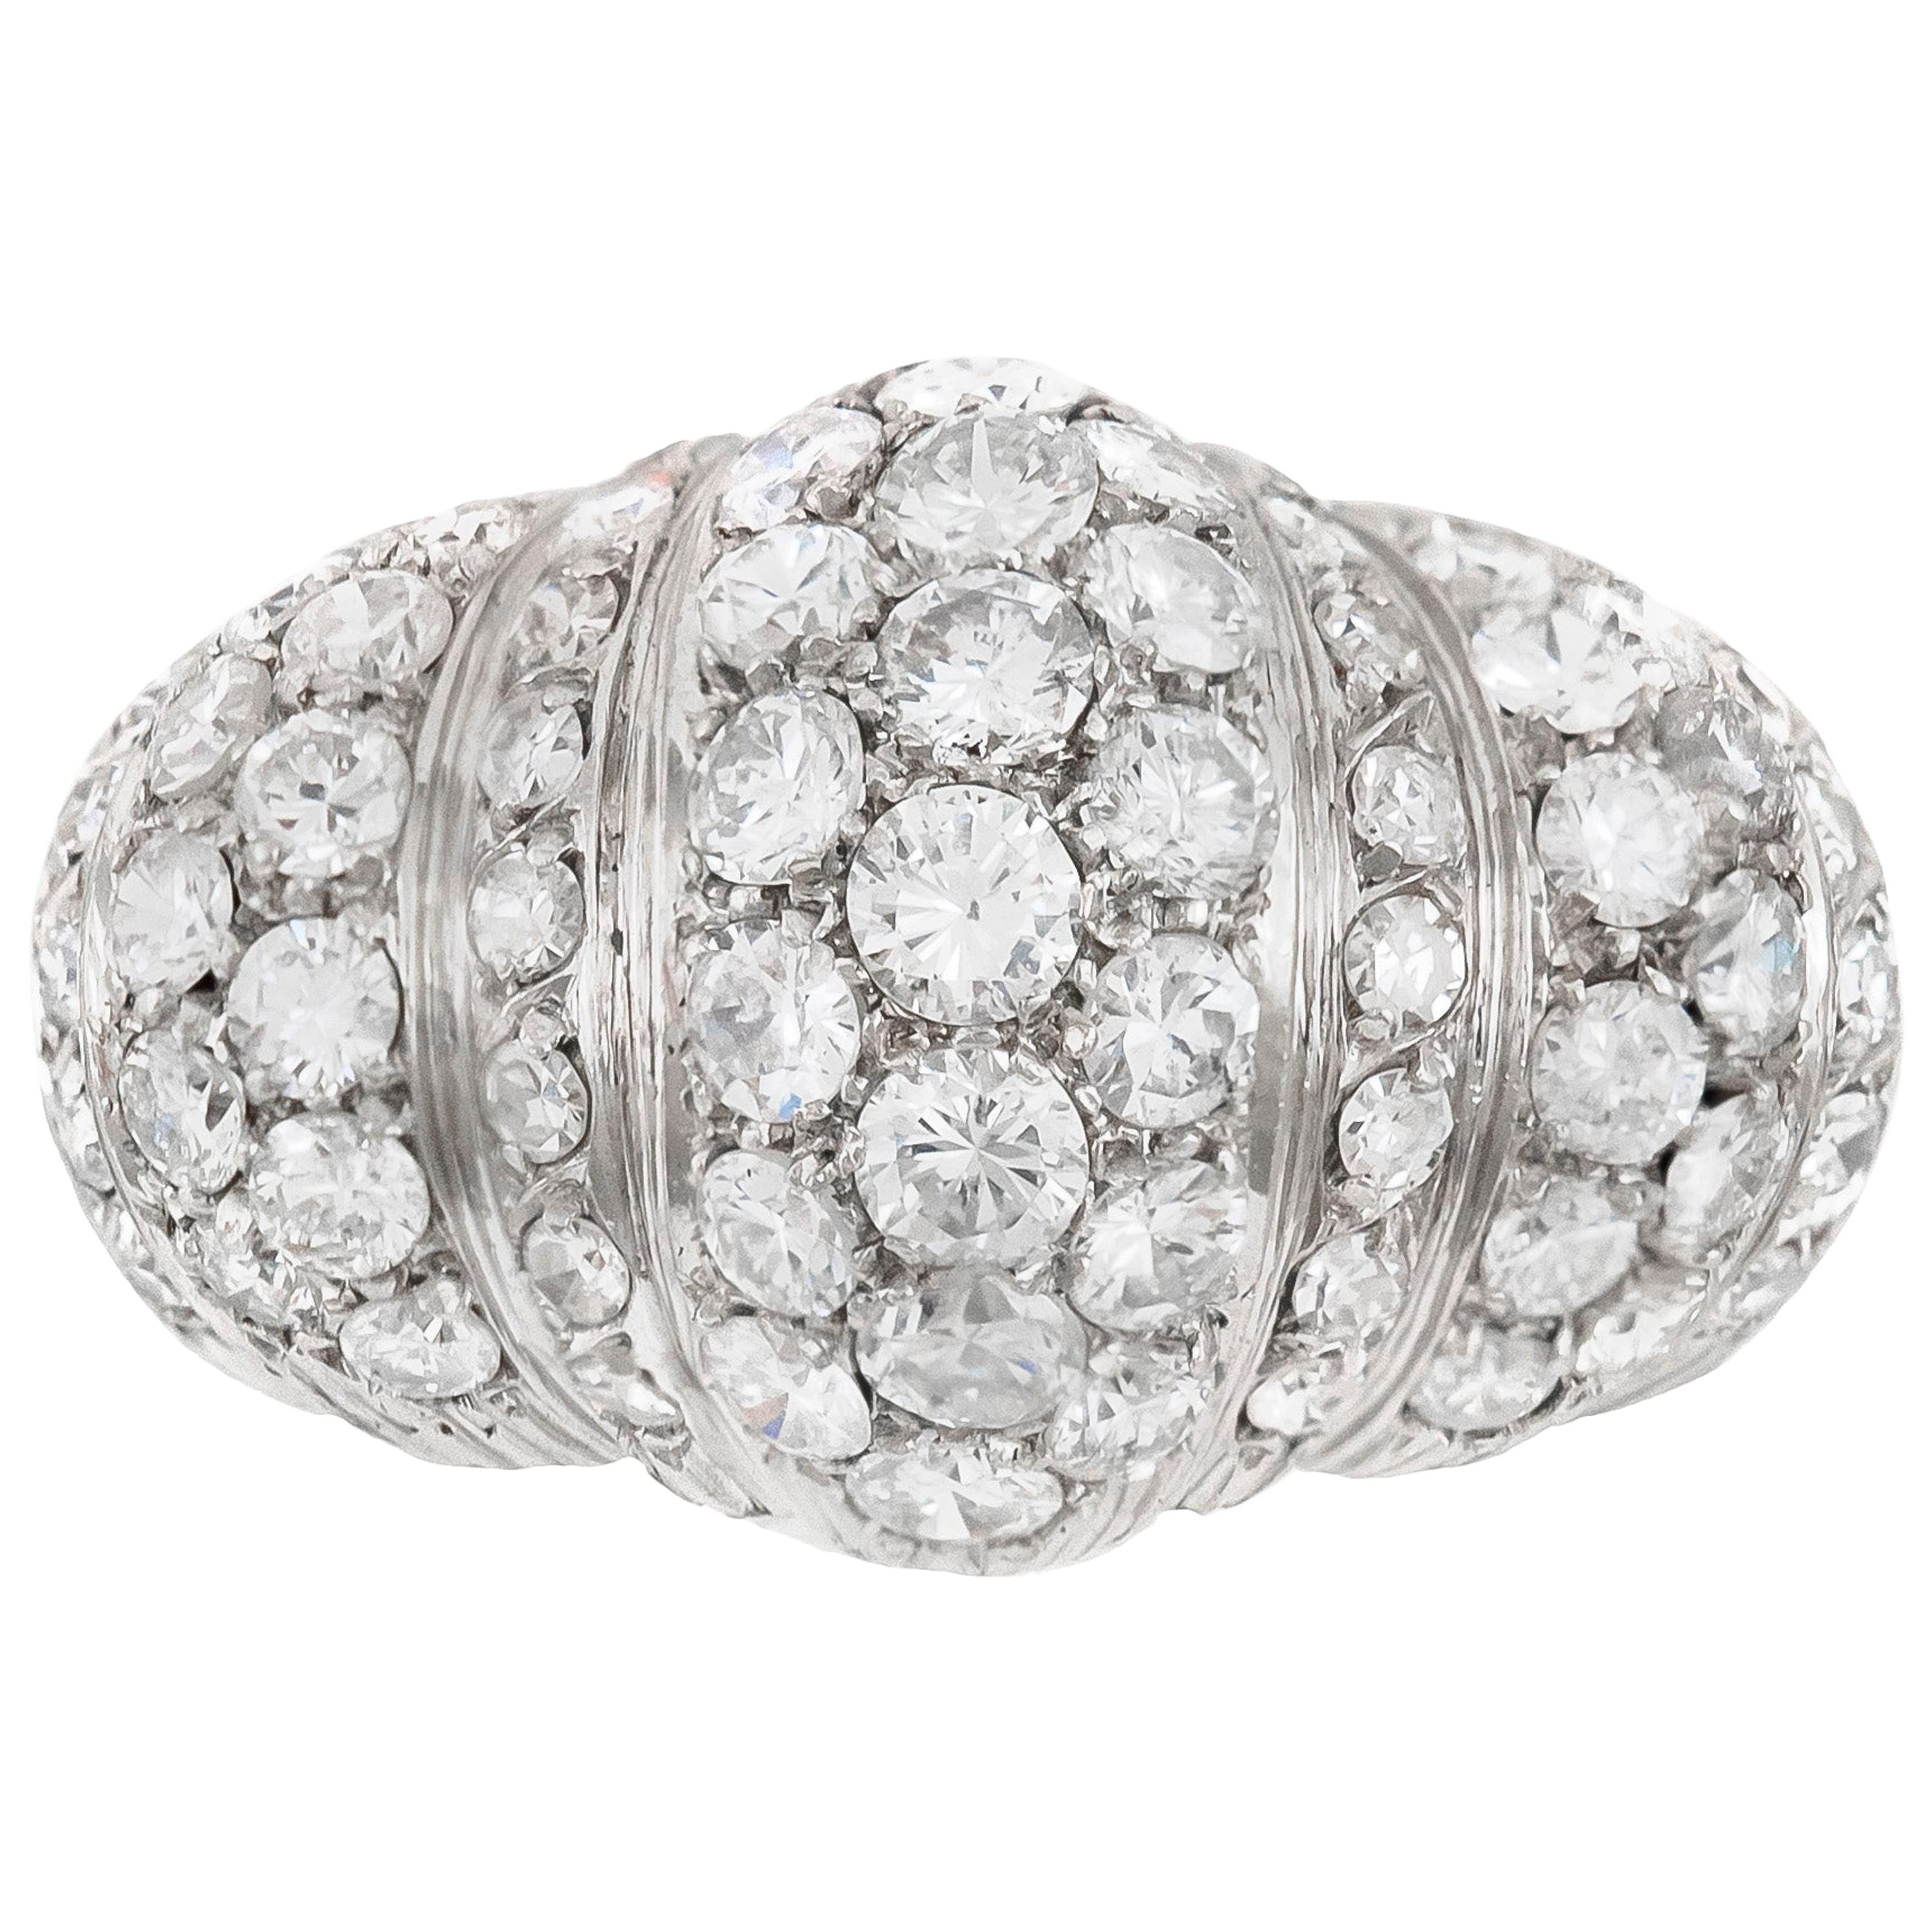 1940s High Setting with Diamonds Ring